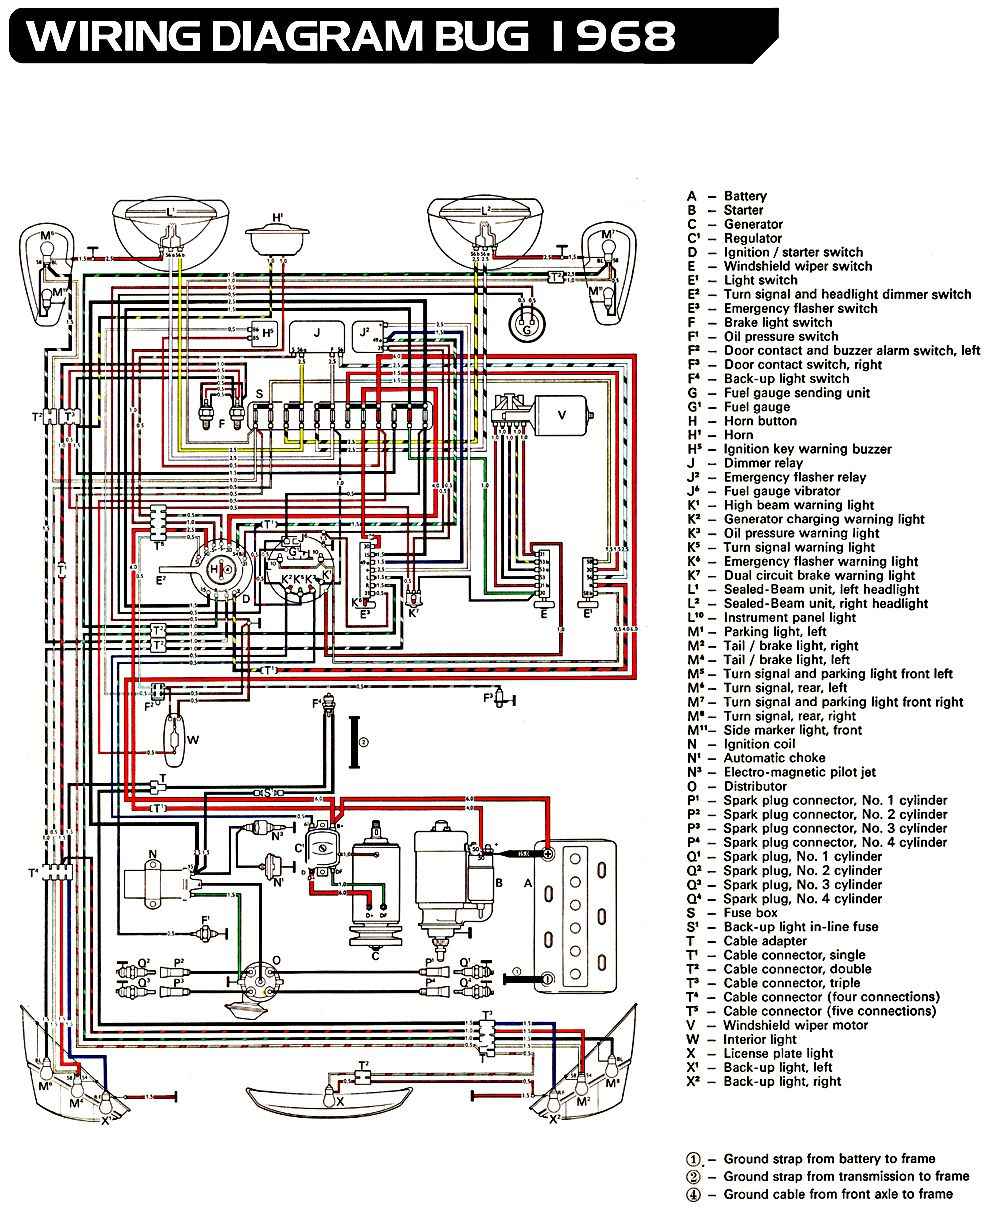 3a1908112d3826270ed5e3be362292bf vw bug ignition wiring diagram 73 vw wiring diagram free vw bug wiring diagram at arjmand.co